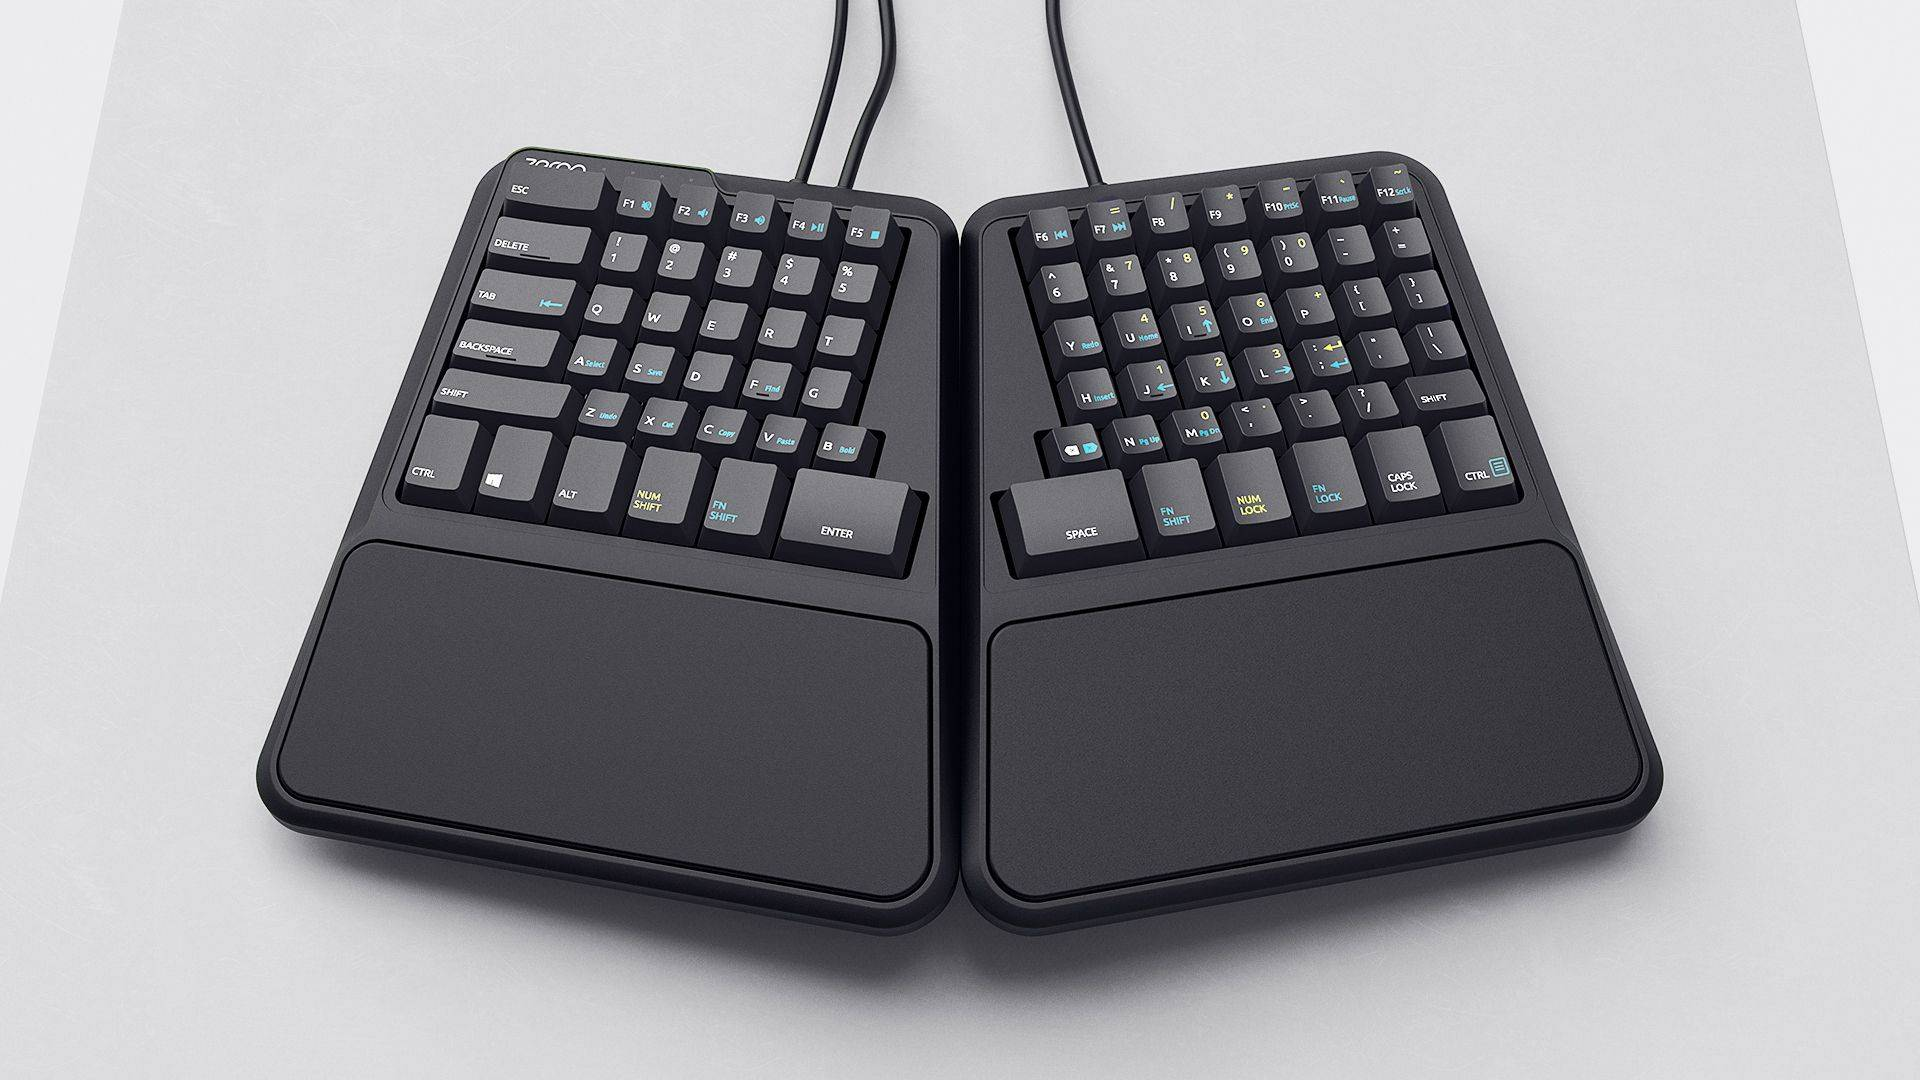 top joined view of mechanical keyboard